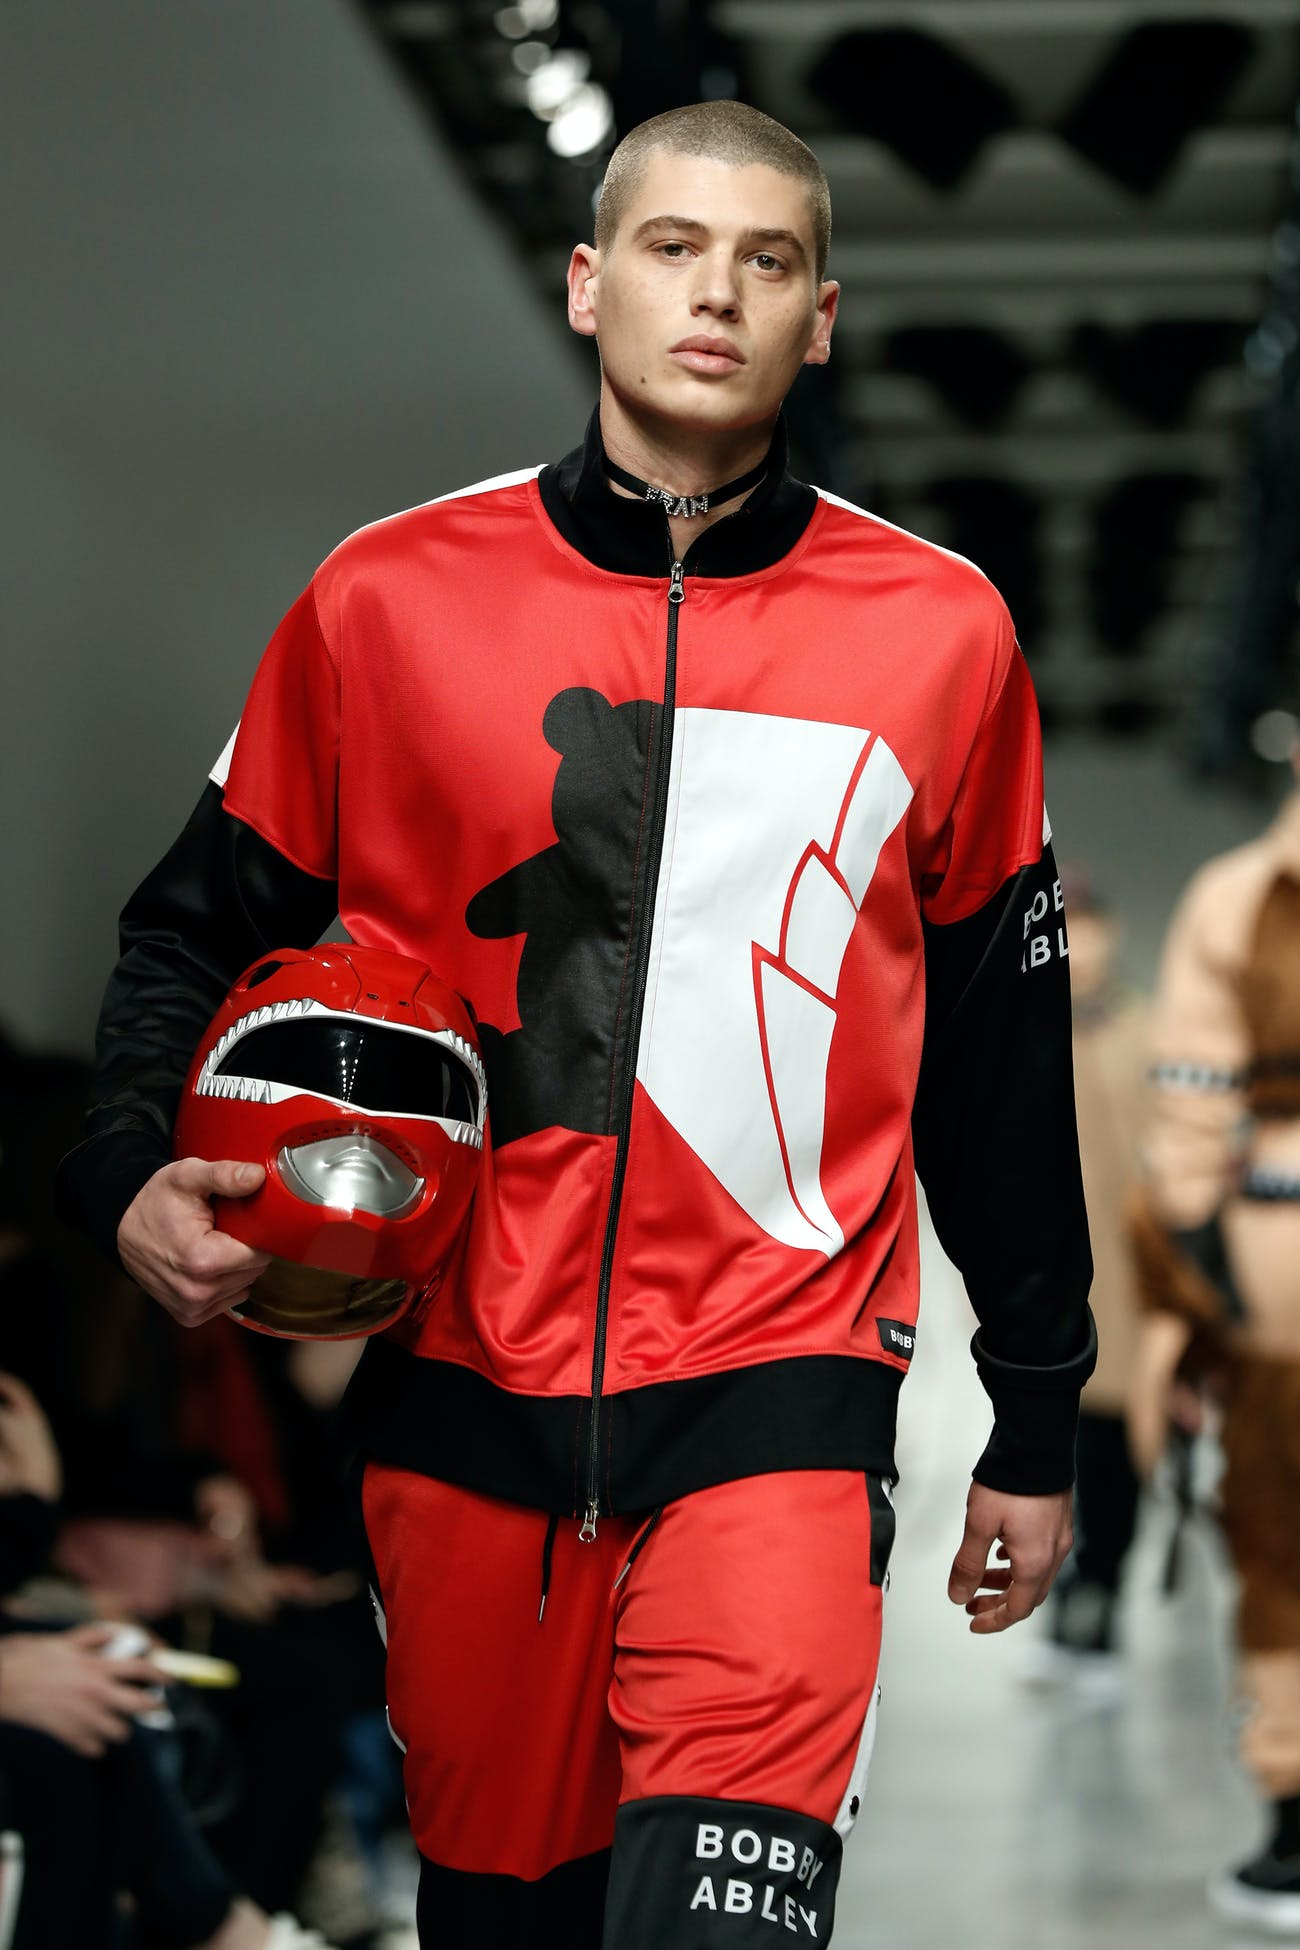 Power Rangers Fashion Bobby Abley